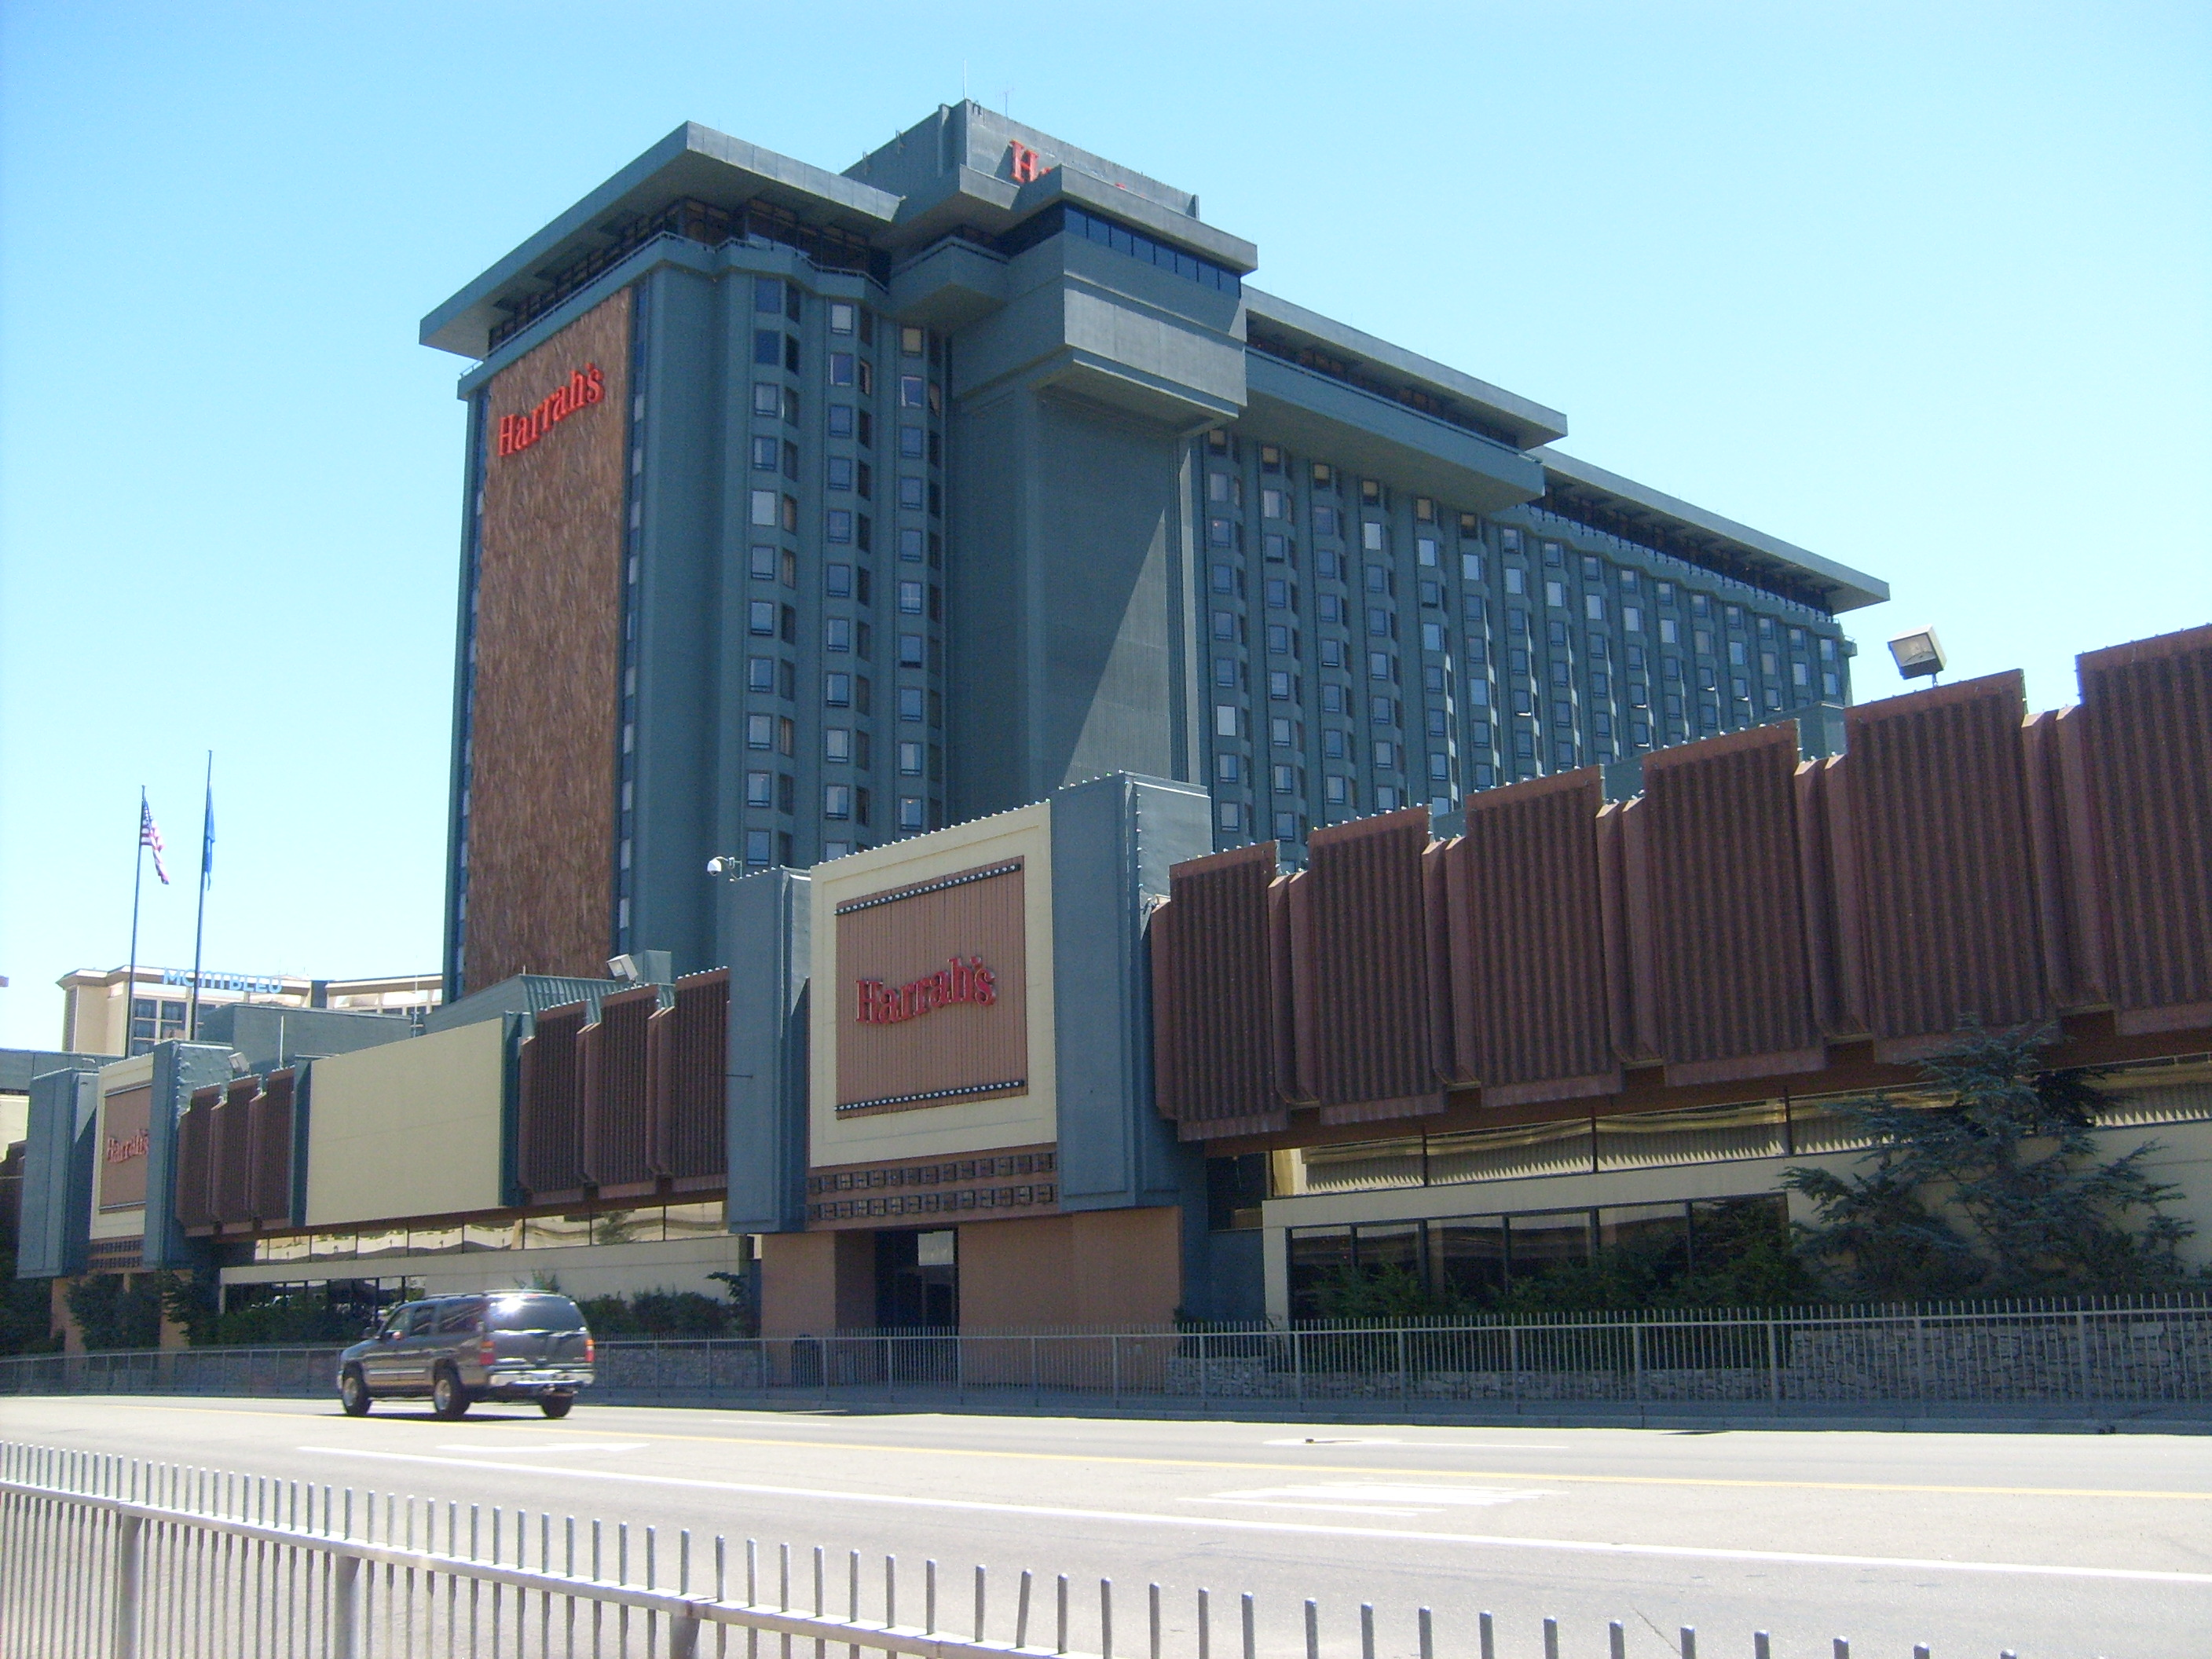 Harveys Casino